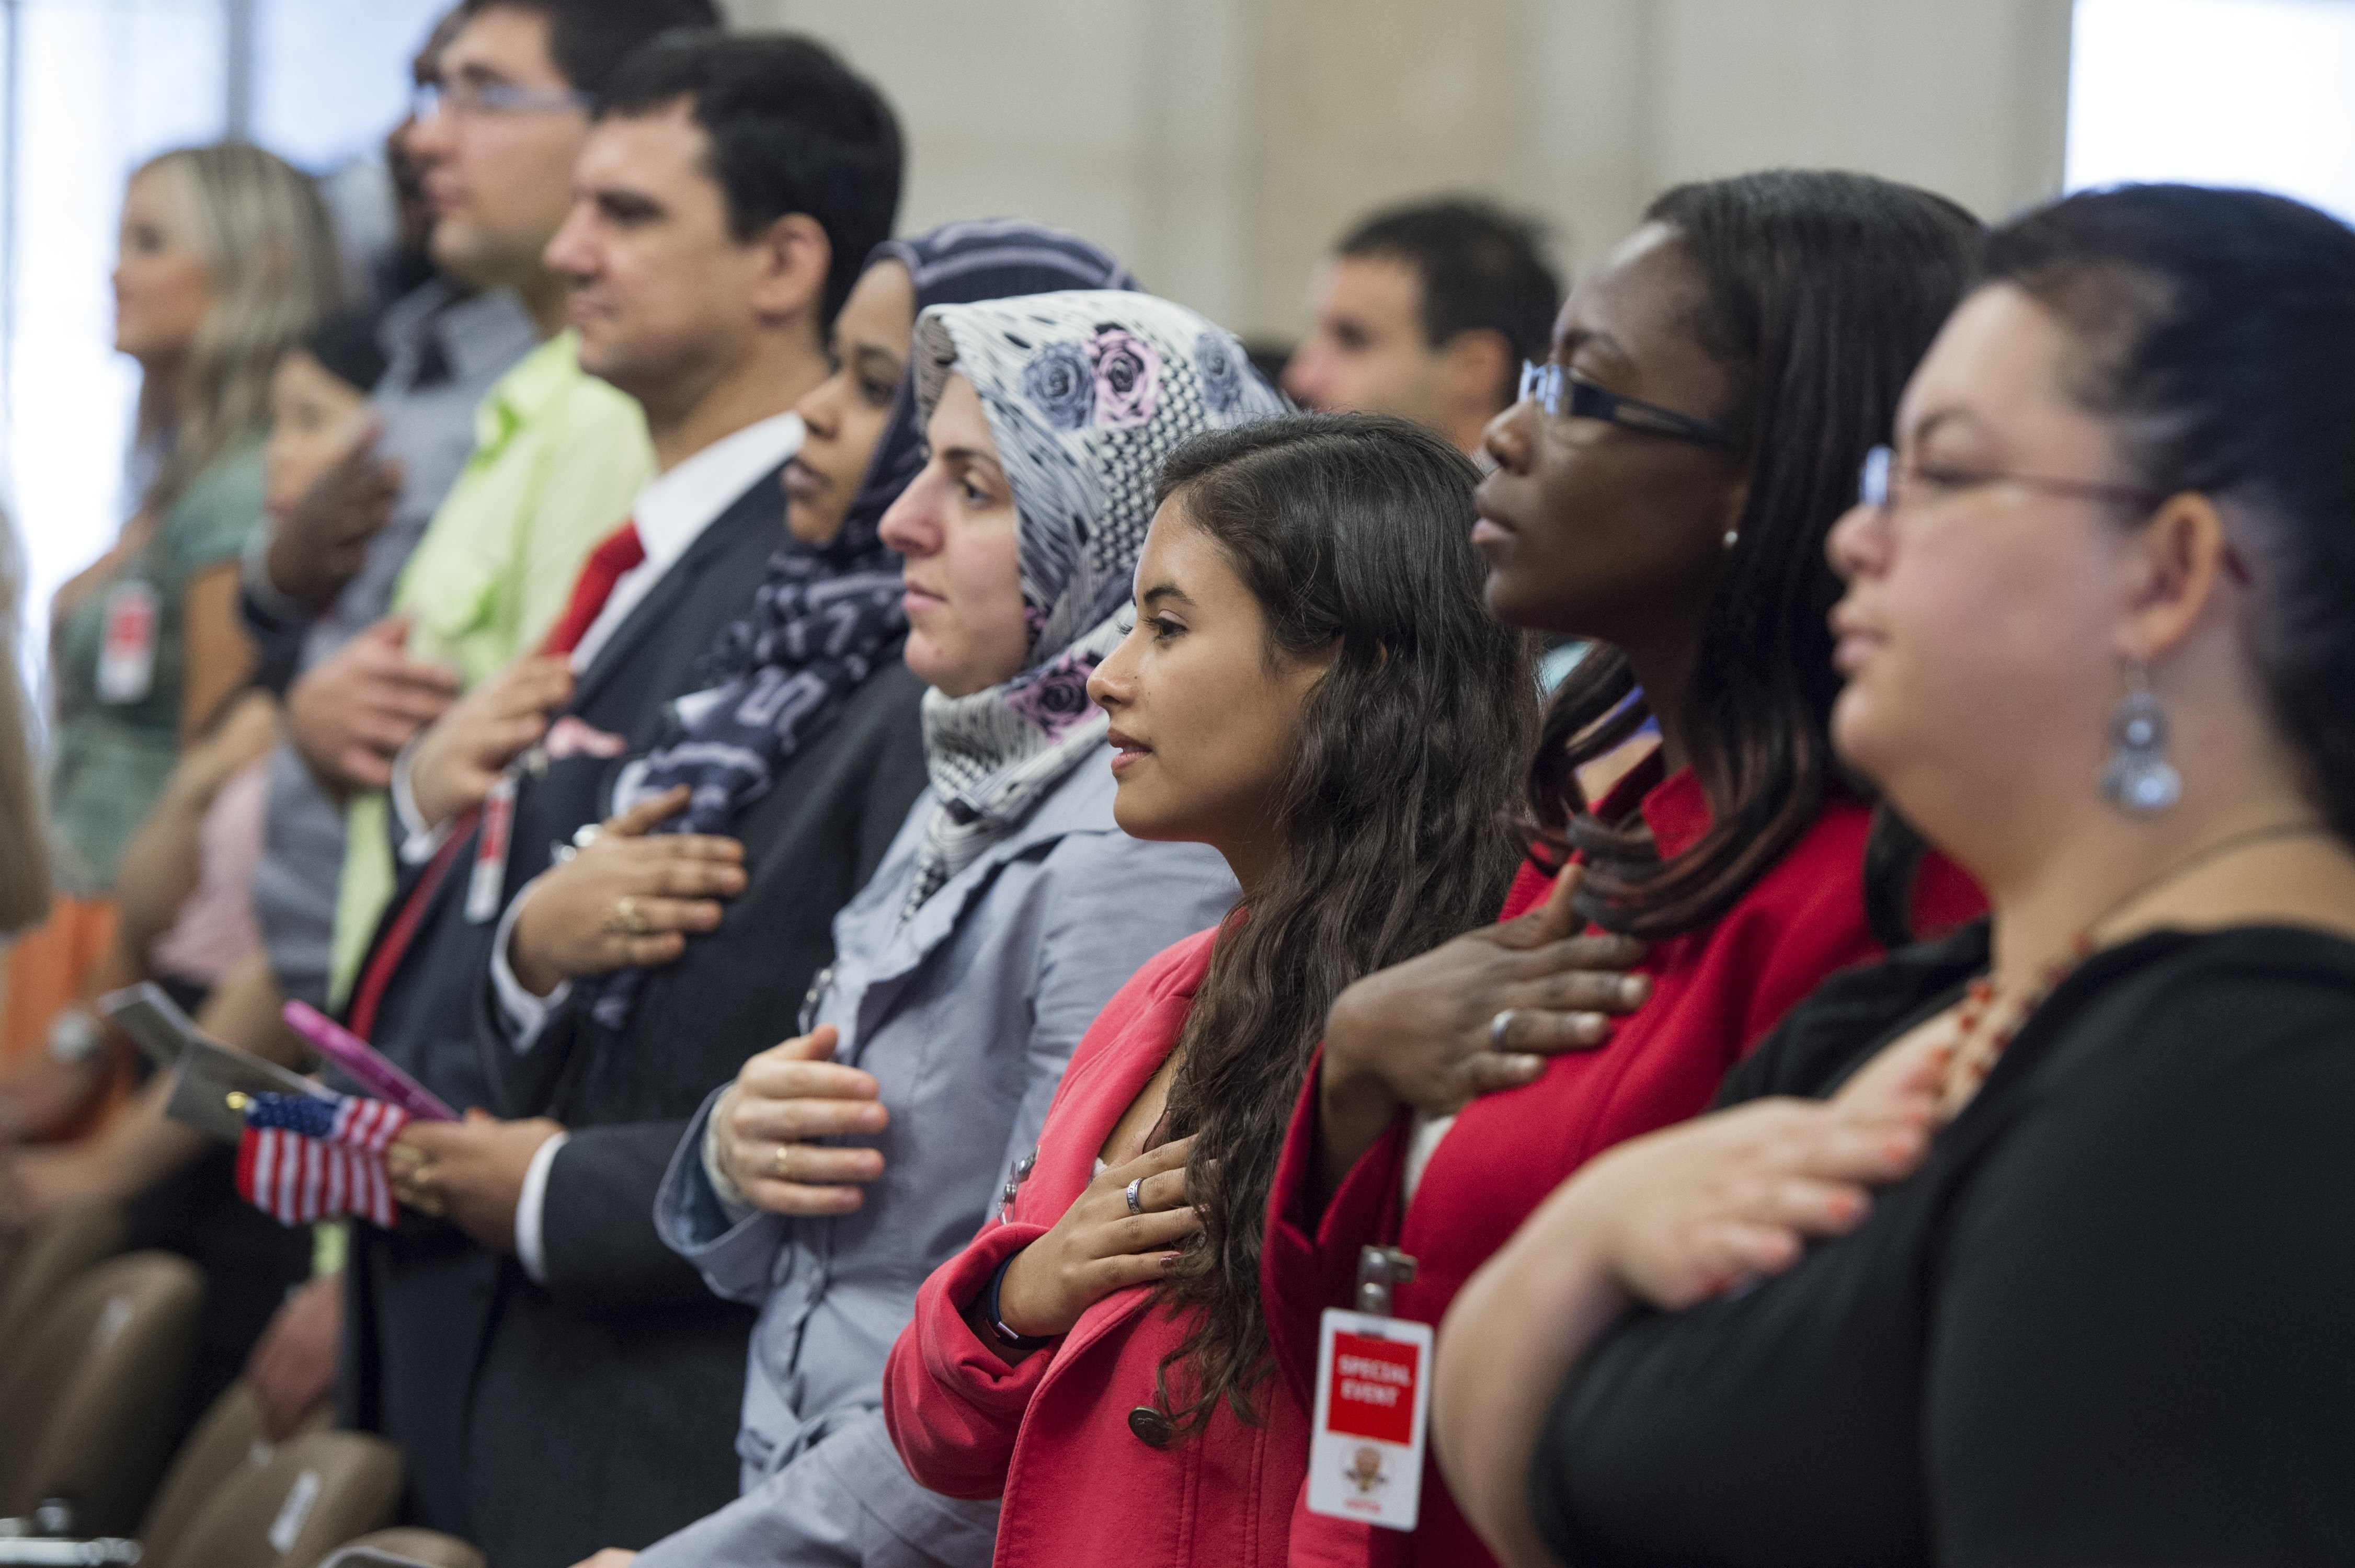 People recite the Pledge of Allegiance during a Naturalization Ceremony at the Justice Department in Washington, DC.